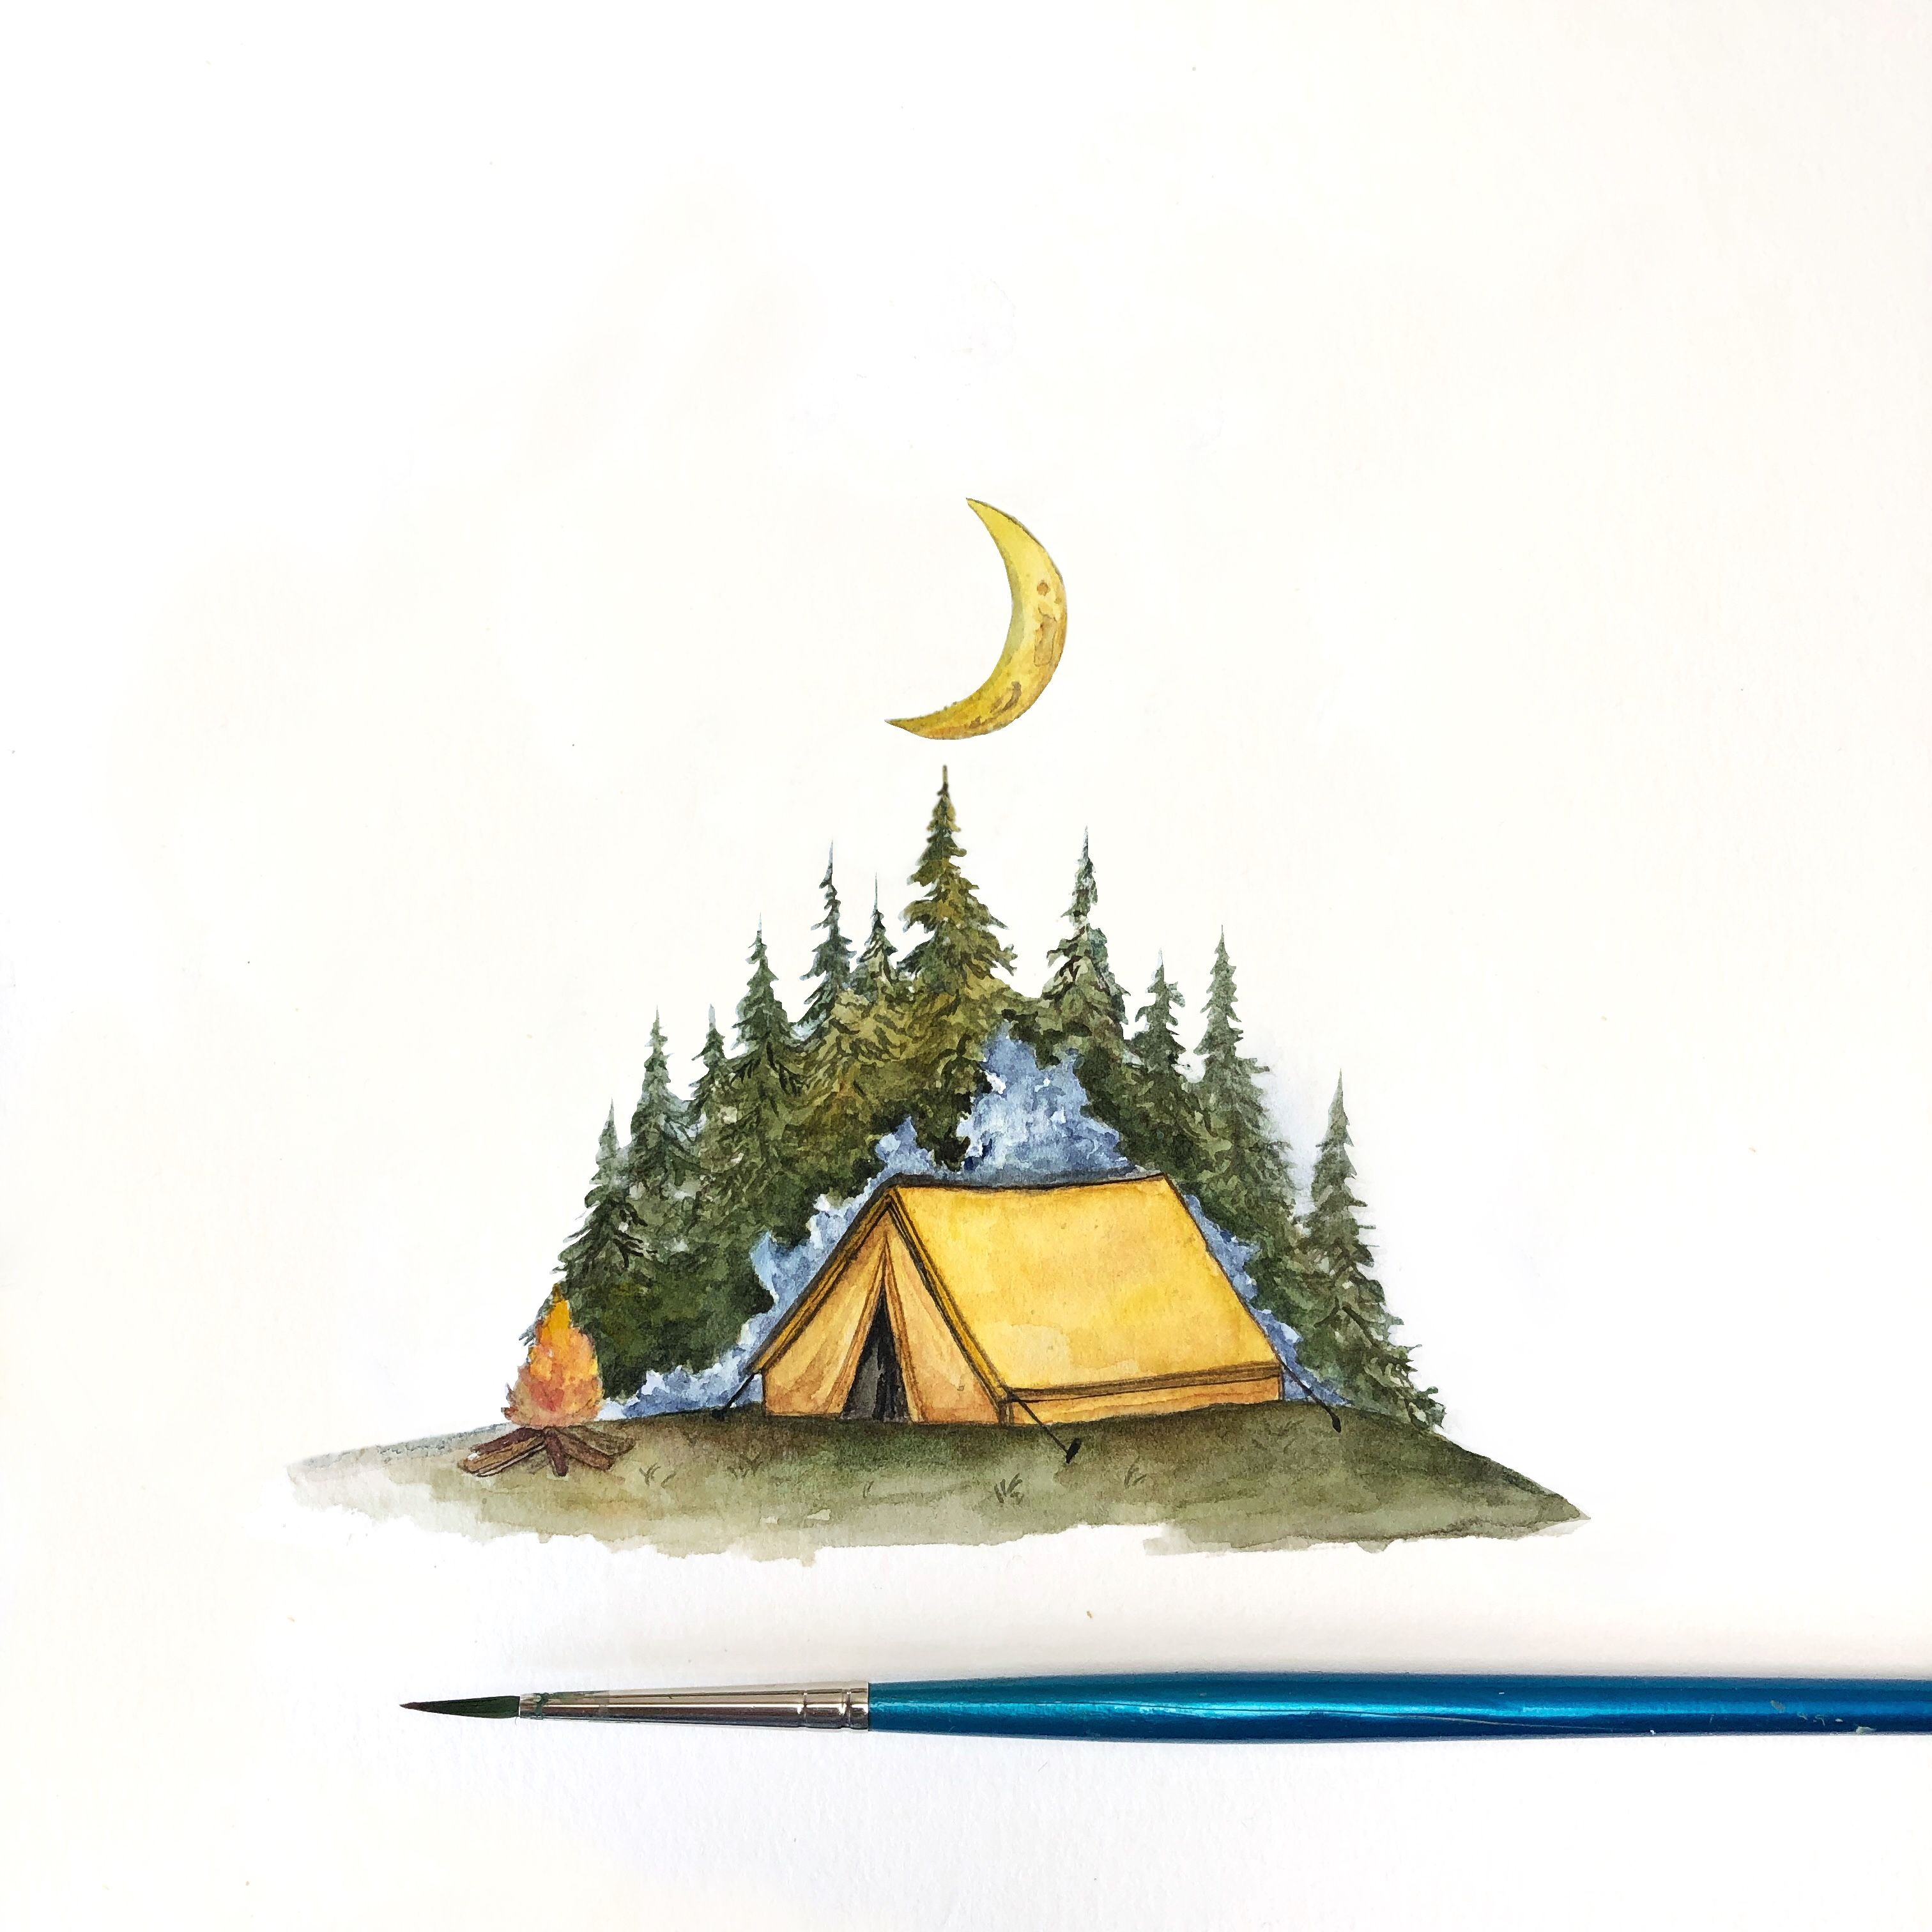 Watercolor Illustration Of A Camping Scene With Tent And Campfire